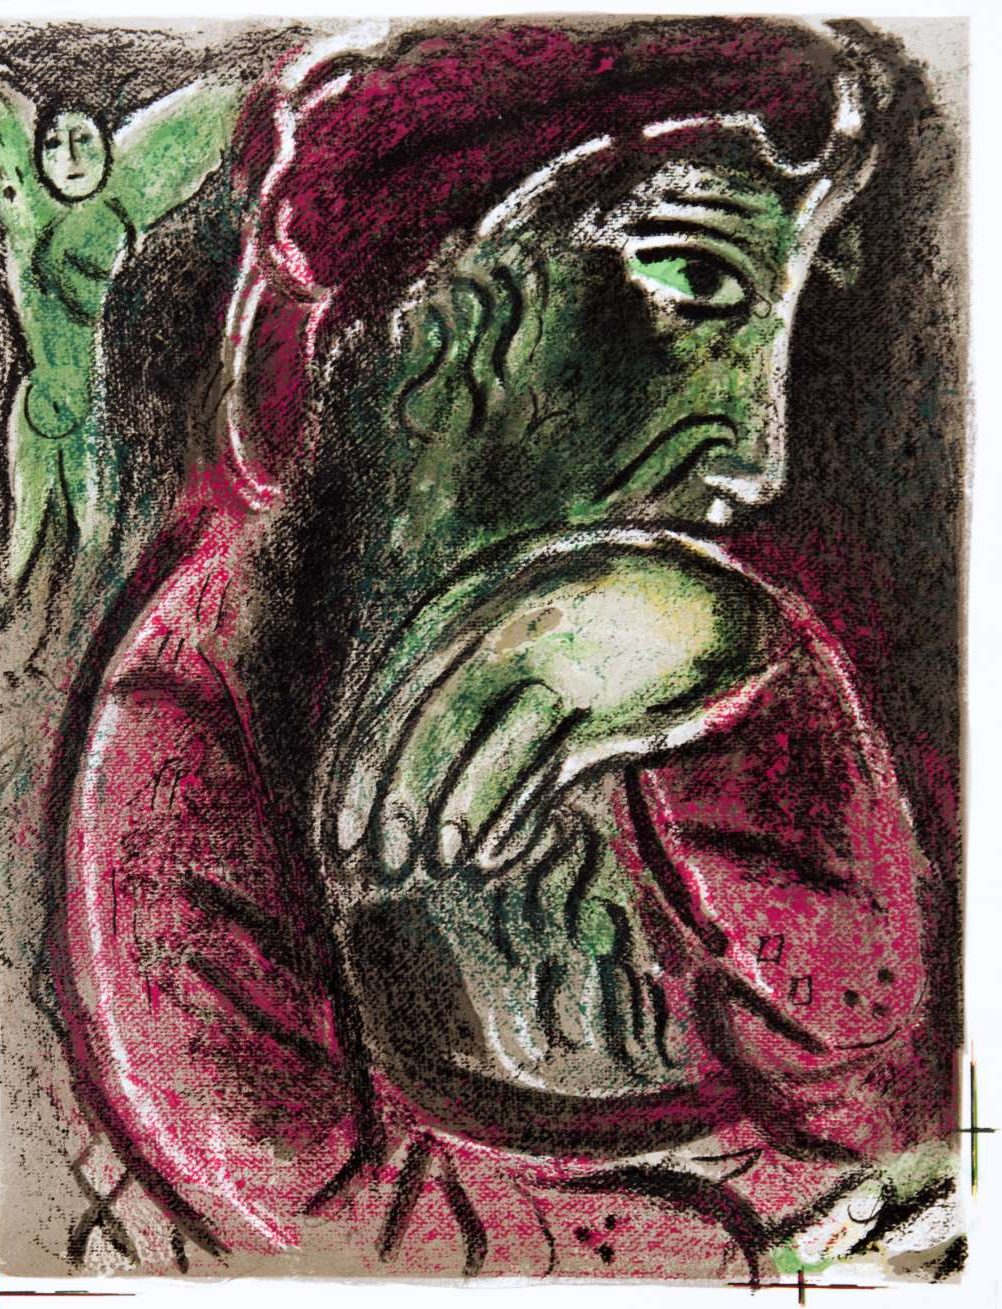 : Marc Chagall, Drawings for the Bible: Job in Despair, 1960. angle on the left side of the image,